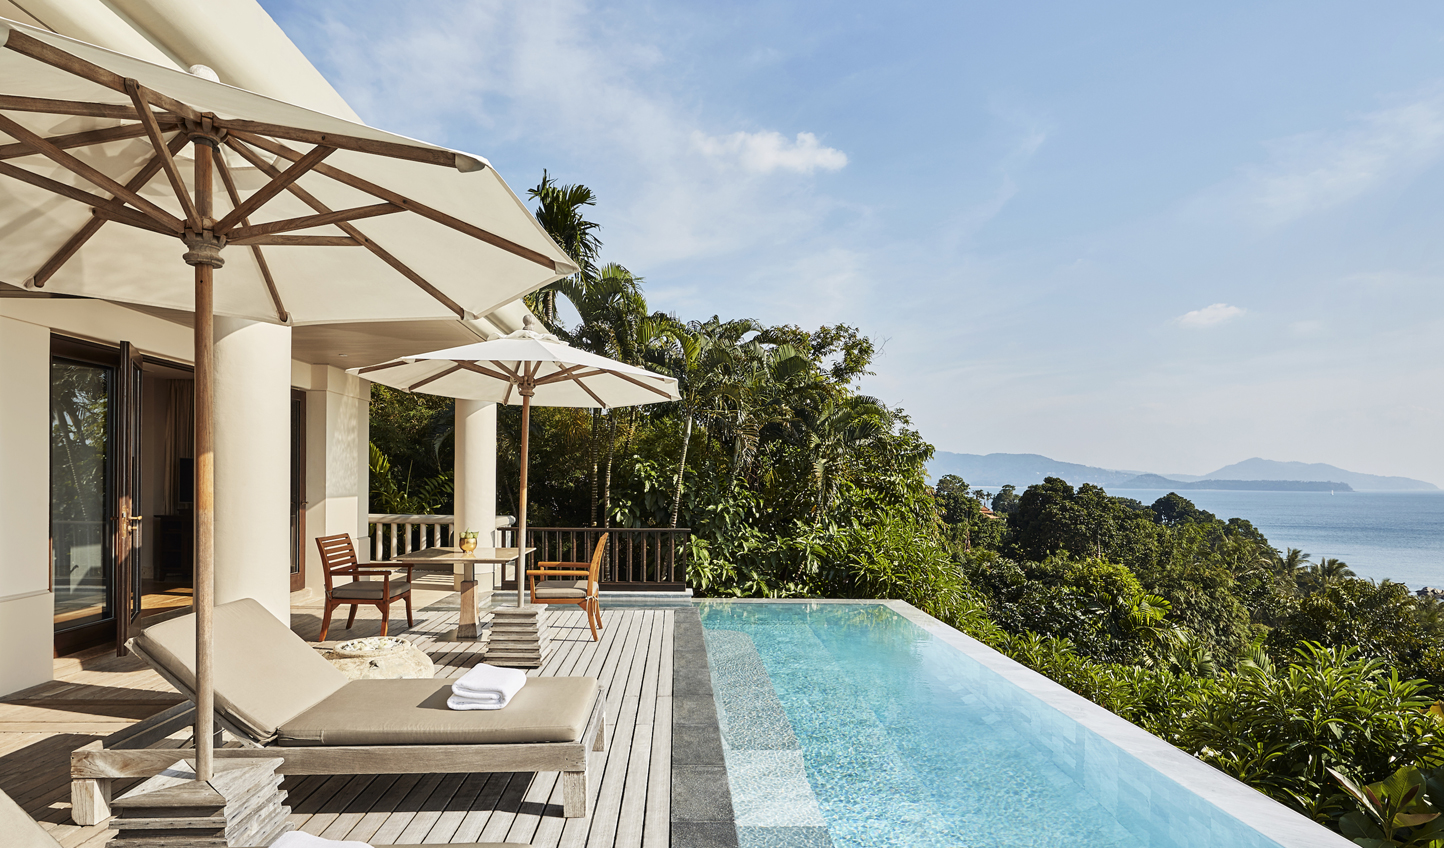 Look out over the ocean from your private villa